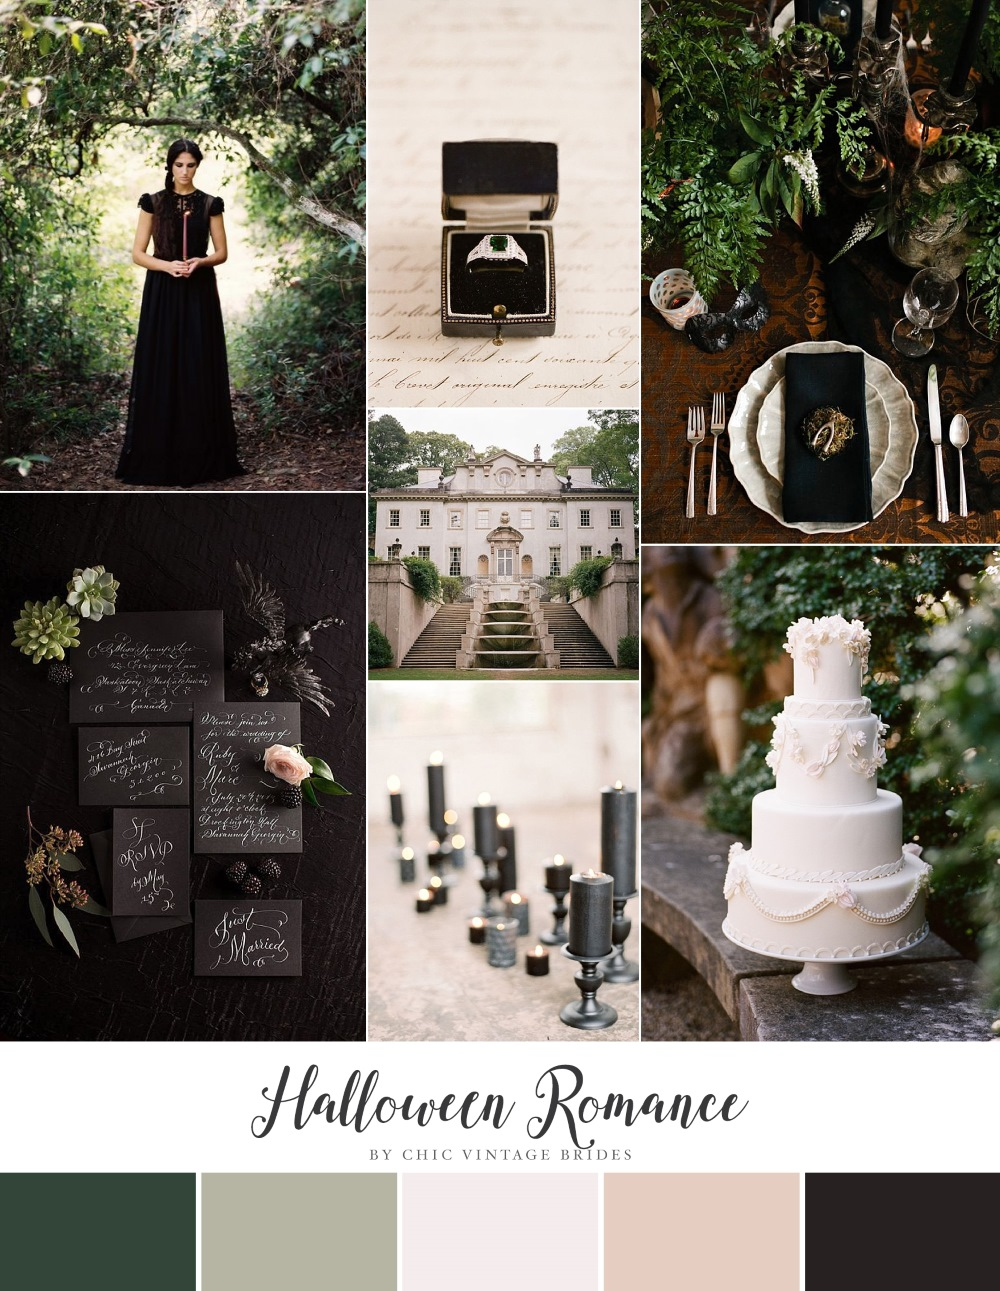 Halloween Romance - Wedding Inspiration in Black, Green & Neutrals